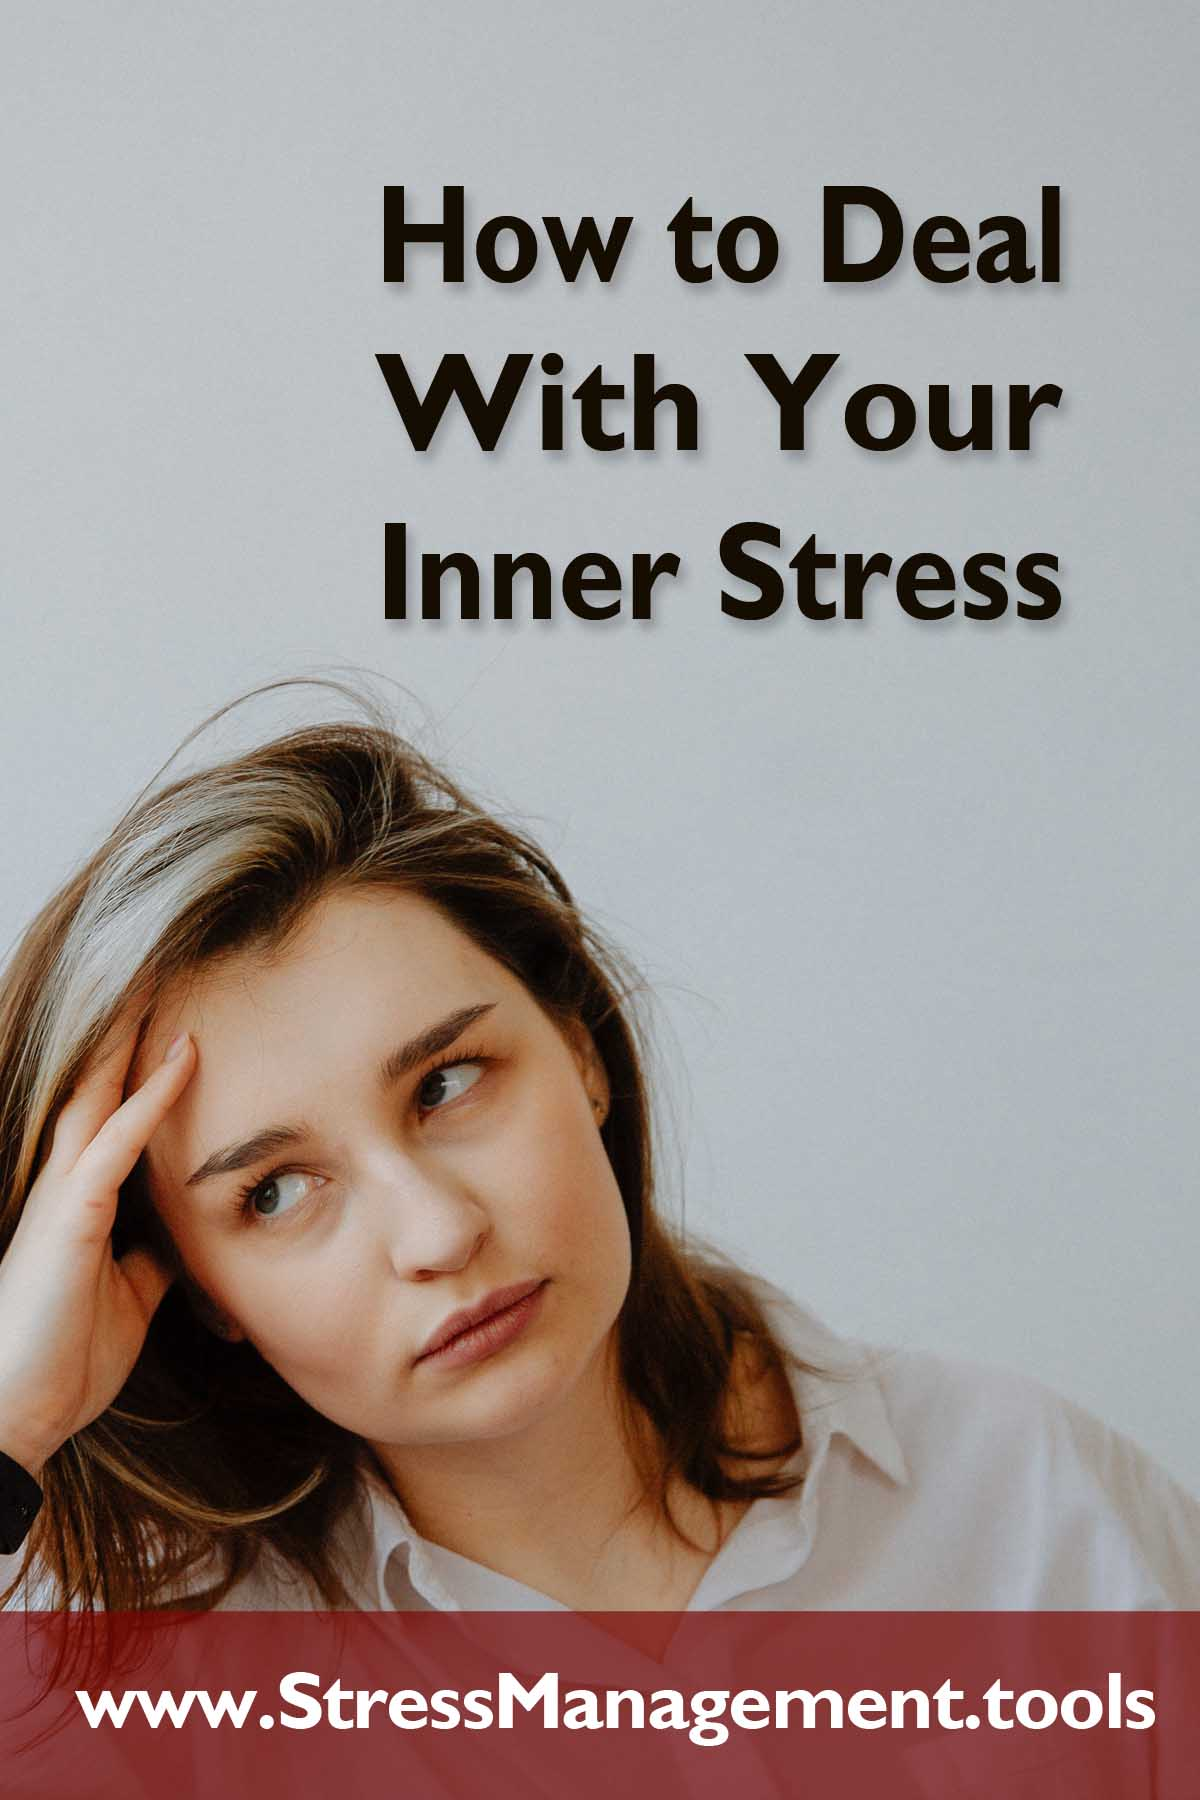 How to Deal With Your Inner Stress